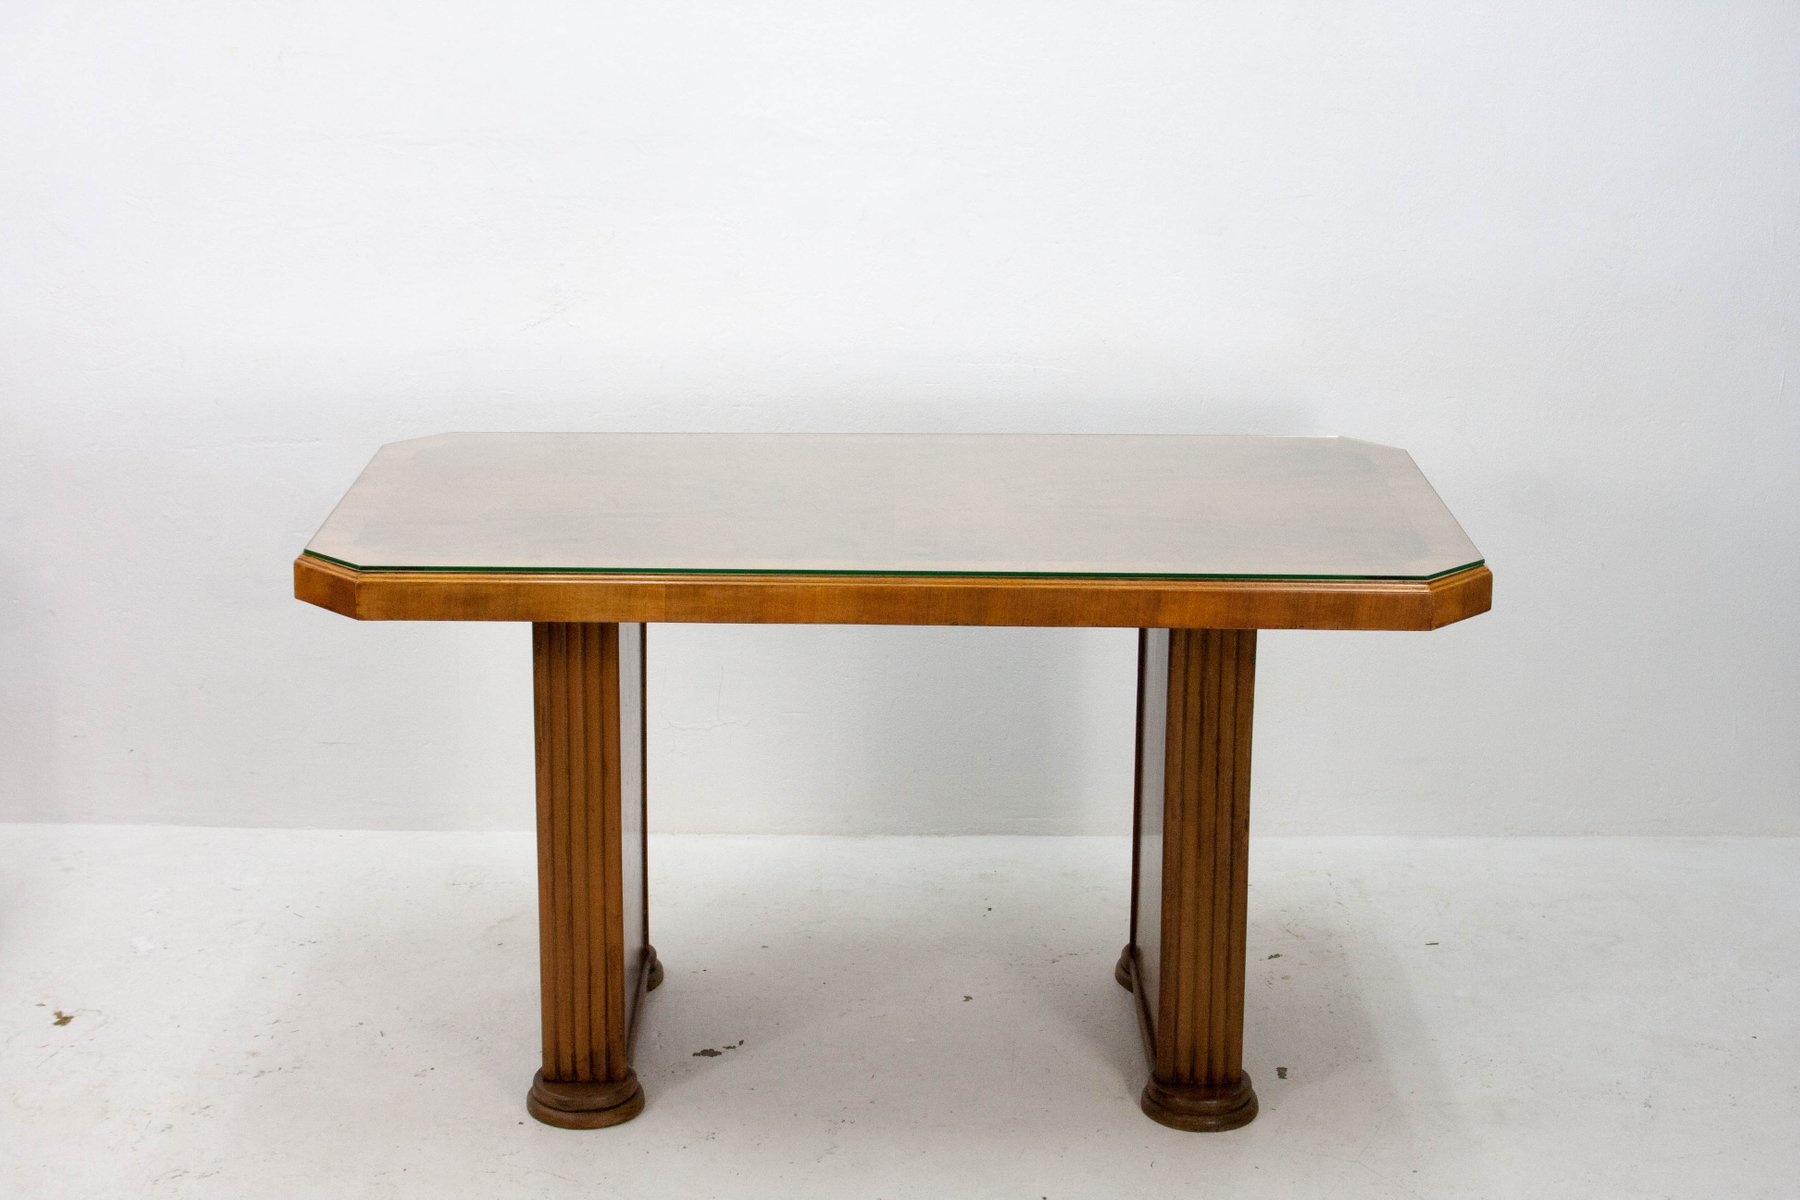 Antique art deco writing table 1915 for sale at pamono for Art deco writing